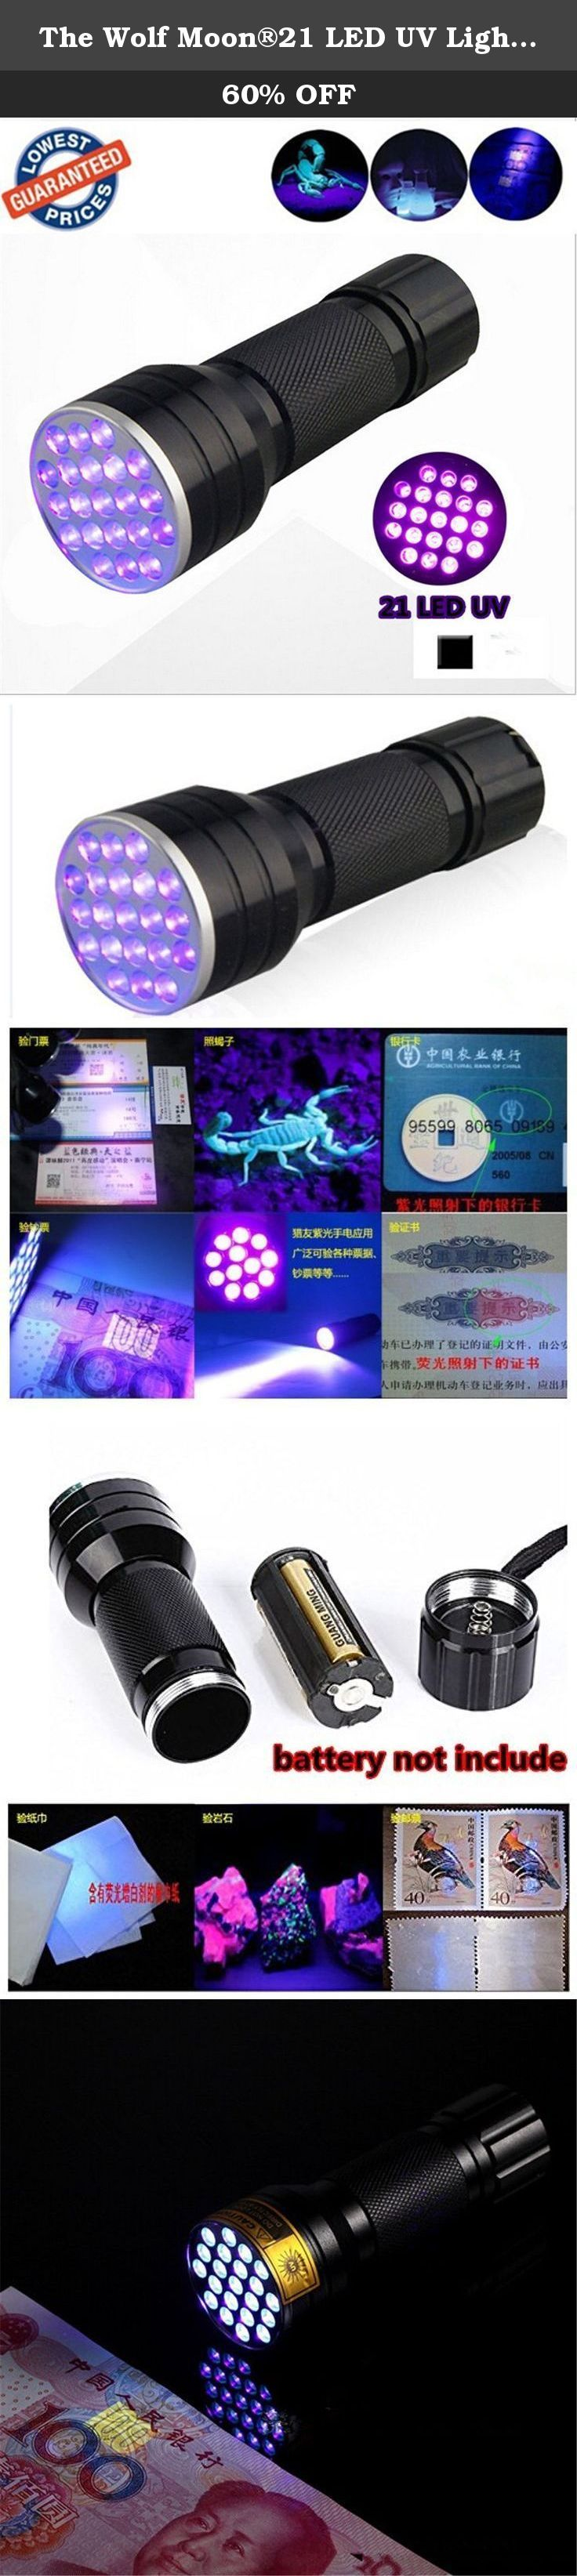 The Wolf Moon®21 LED UV Light 395nm Ultraviolet Flashlight Blacklight to Authenticate Currency. Size:21 LED Main application: Disinfection sterilization. curing printing ink . Checking metal crack. Looking for photocatalyst,fuel and gas leaks. Money,Tickets, Passort, Credit card, official identification cards Anti-fake detection. Medical measurements and biometric security testing. Spotting natural amber, arresting scorpions, attracting fish showing invisible food stains on the floor and...